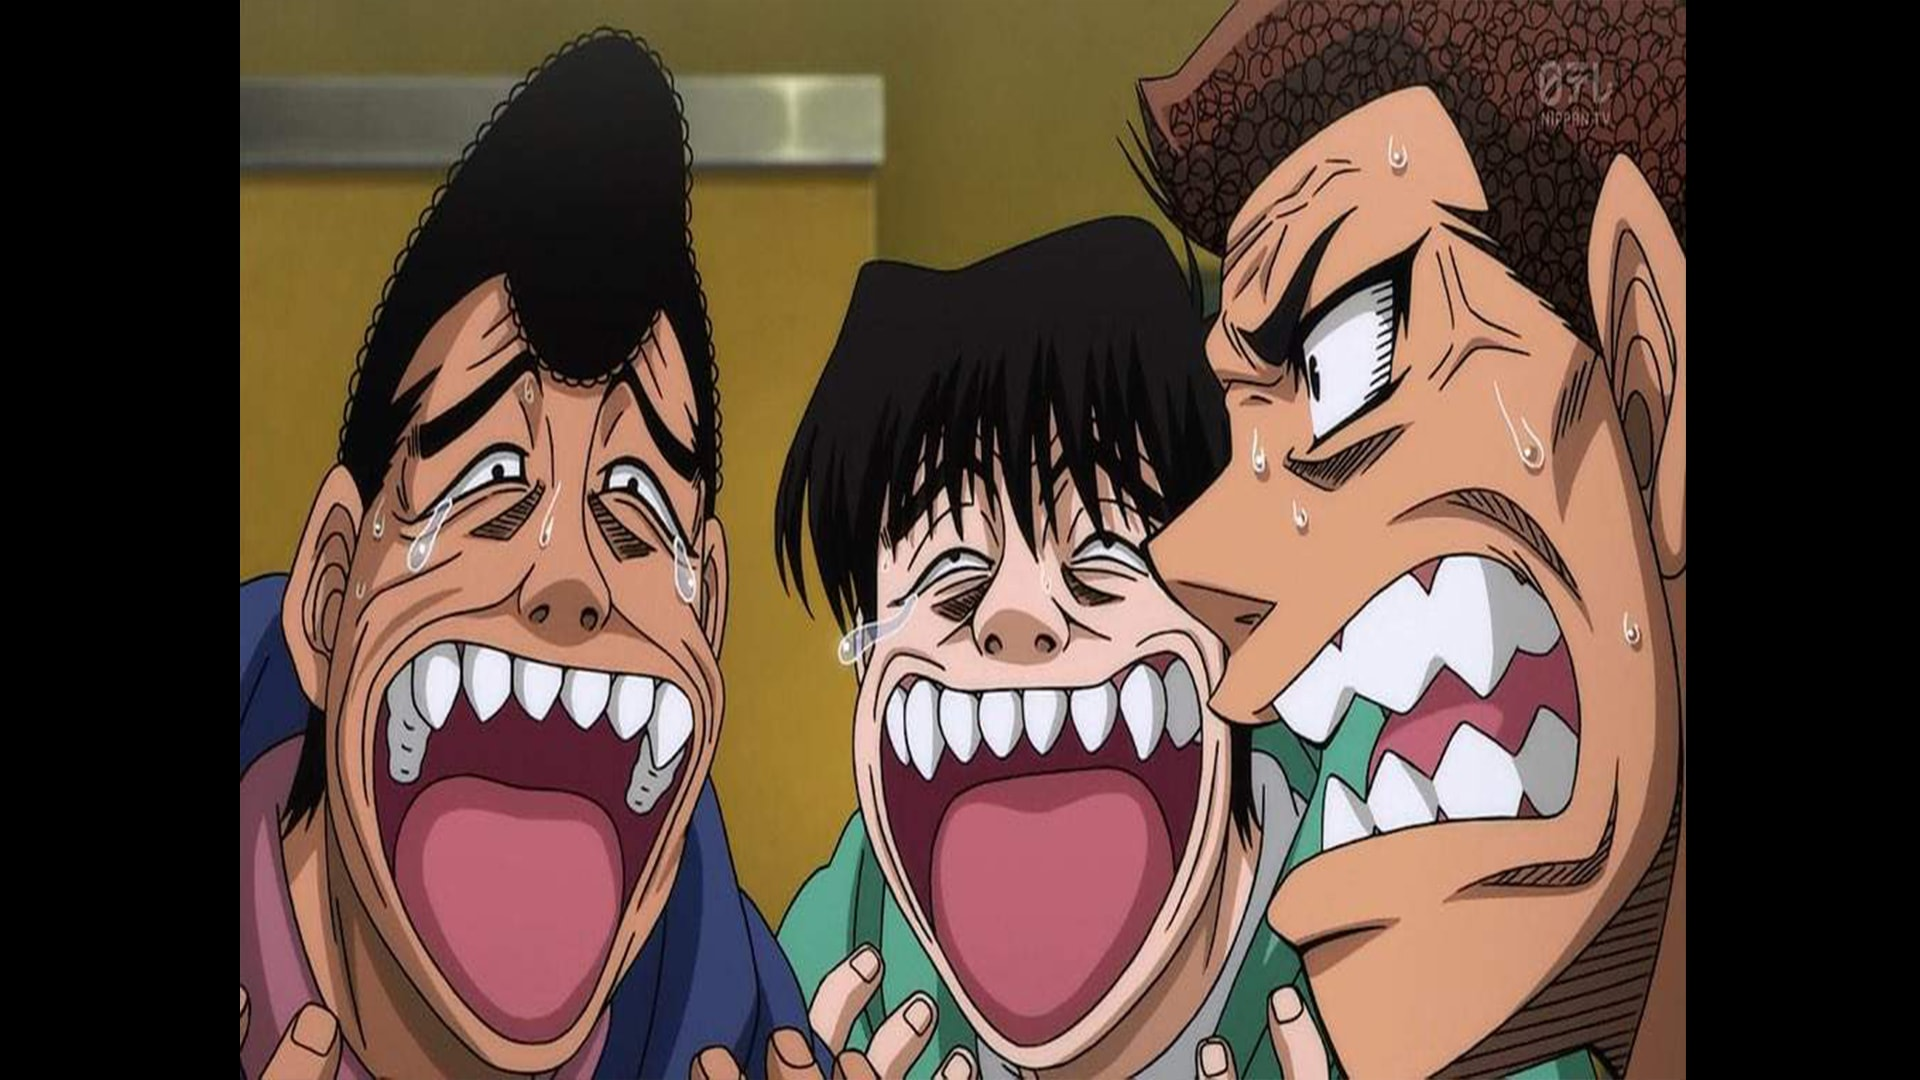 IPPO NO TÉLÉCHARGER VOSTFR HAJIME NEW CHALLENGER